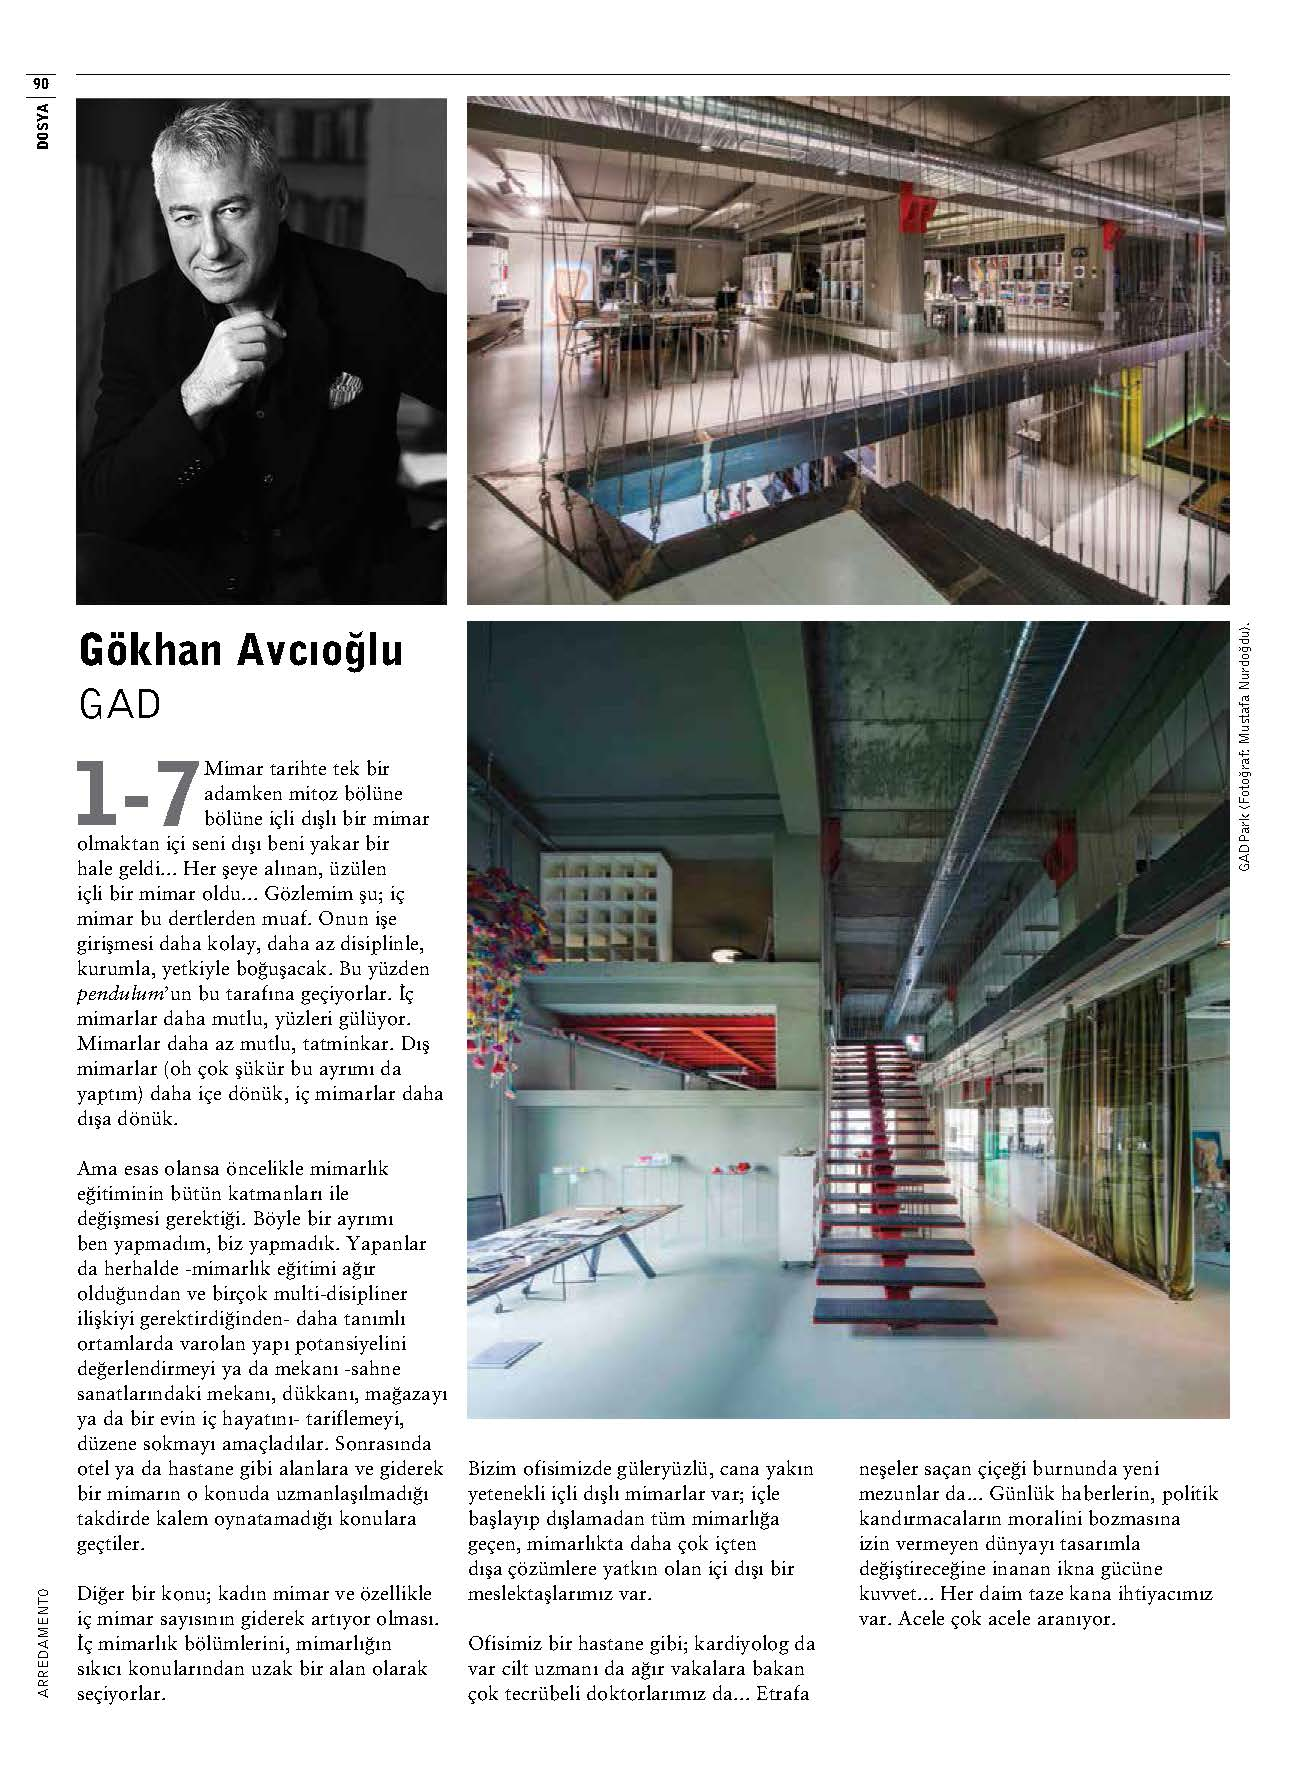 gad gokhan avcioglu has been featured by arredamento